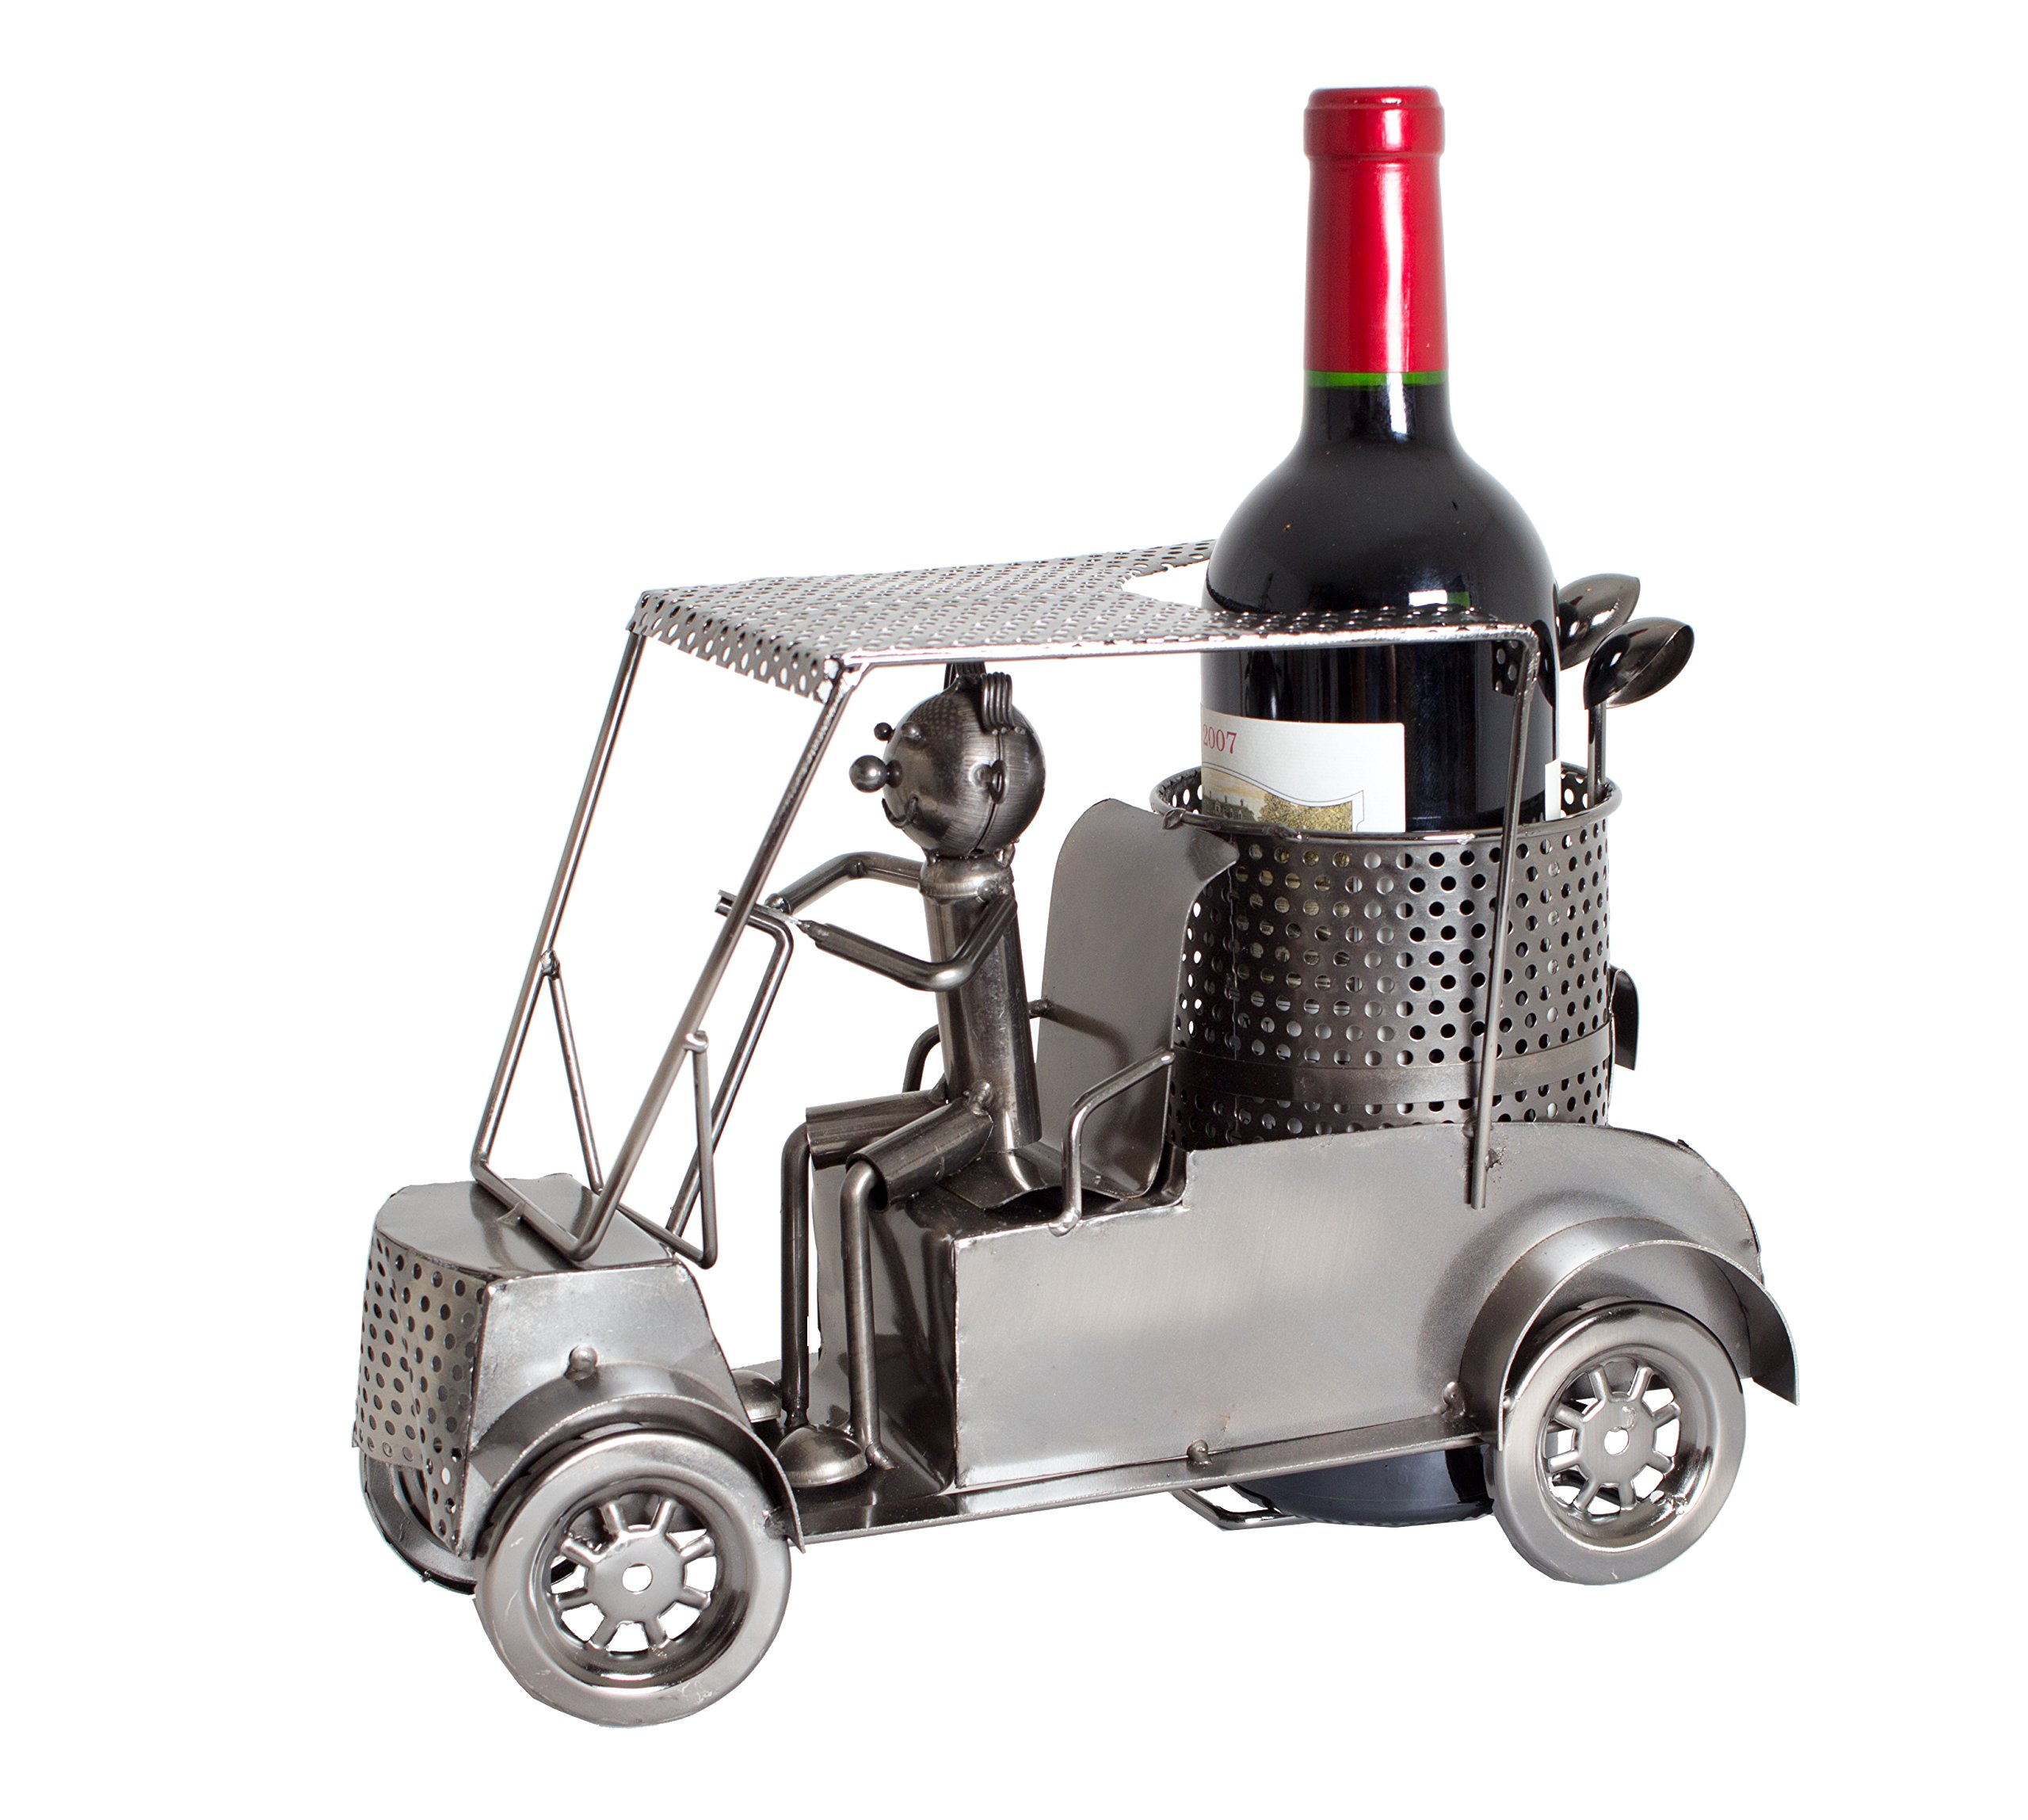 BRUBAKER Wine Bottle Holder Statue Golfer in A Golf Cart Sculptures and Figurines Decor & Vintage Wine Racks and Stands Gifts Decoration by BRUBAKER (Image #1)